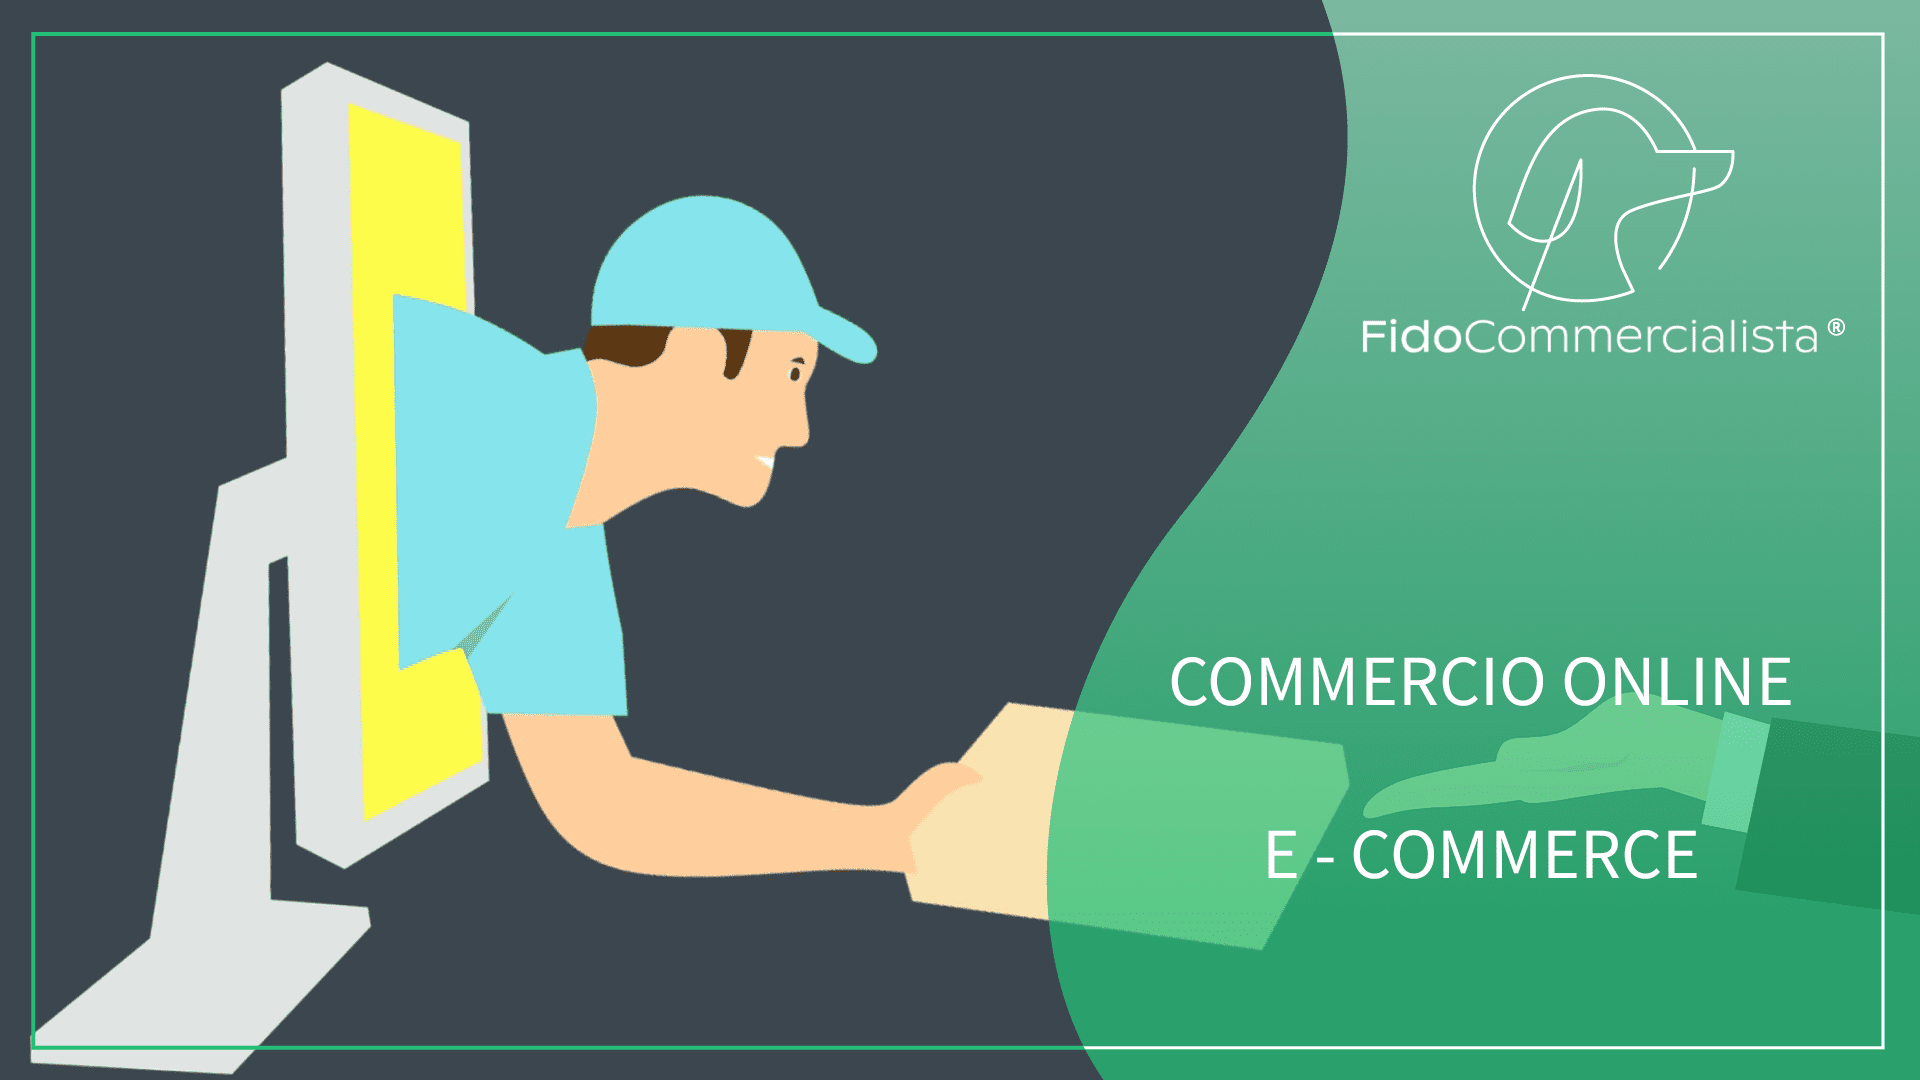 e-commerce commercialista online